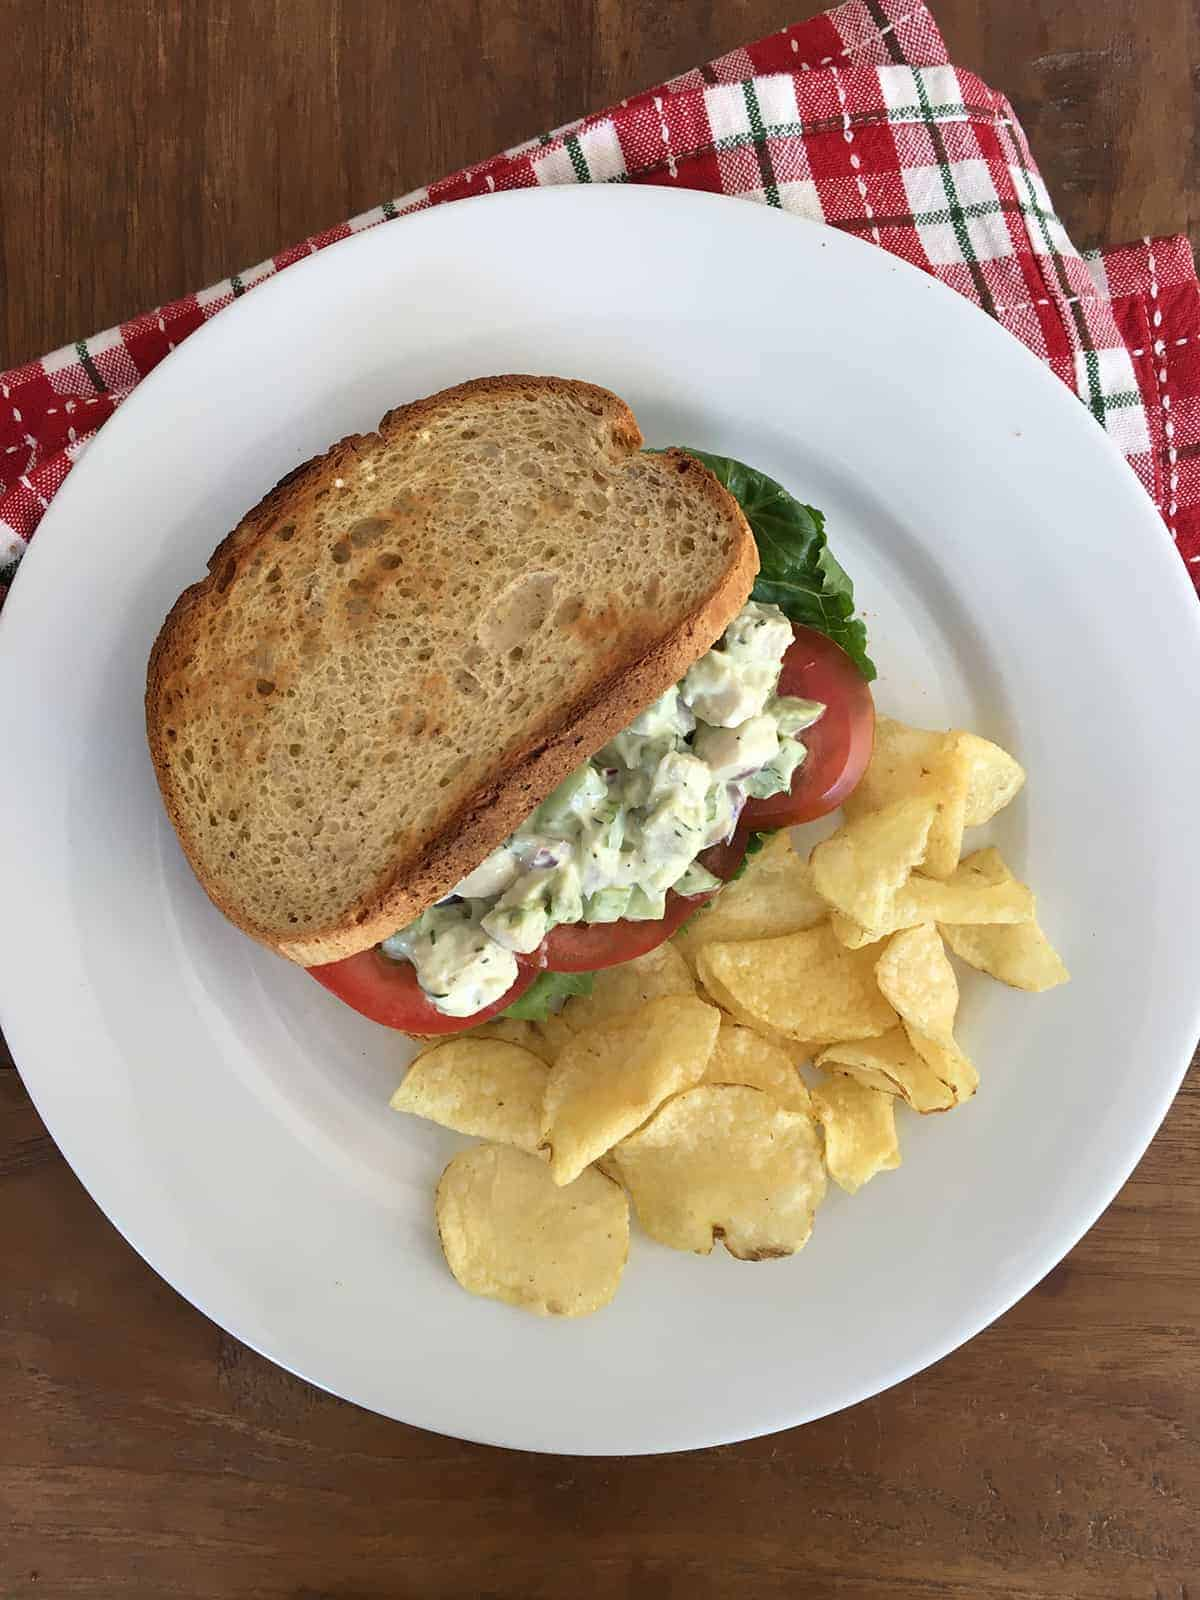 Chicken salad with avocado in a sandwich with toasted whole-grain bread, sliced tomatoes and Romaine lettuce and a side of potato chips